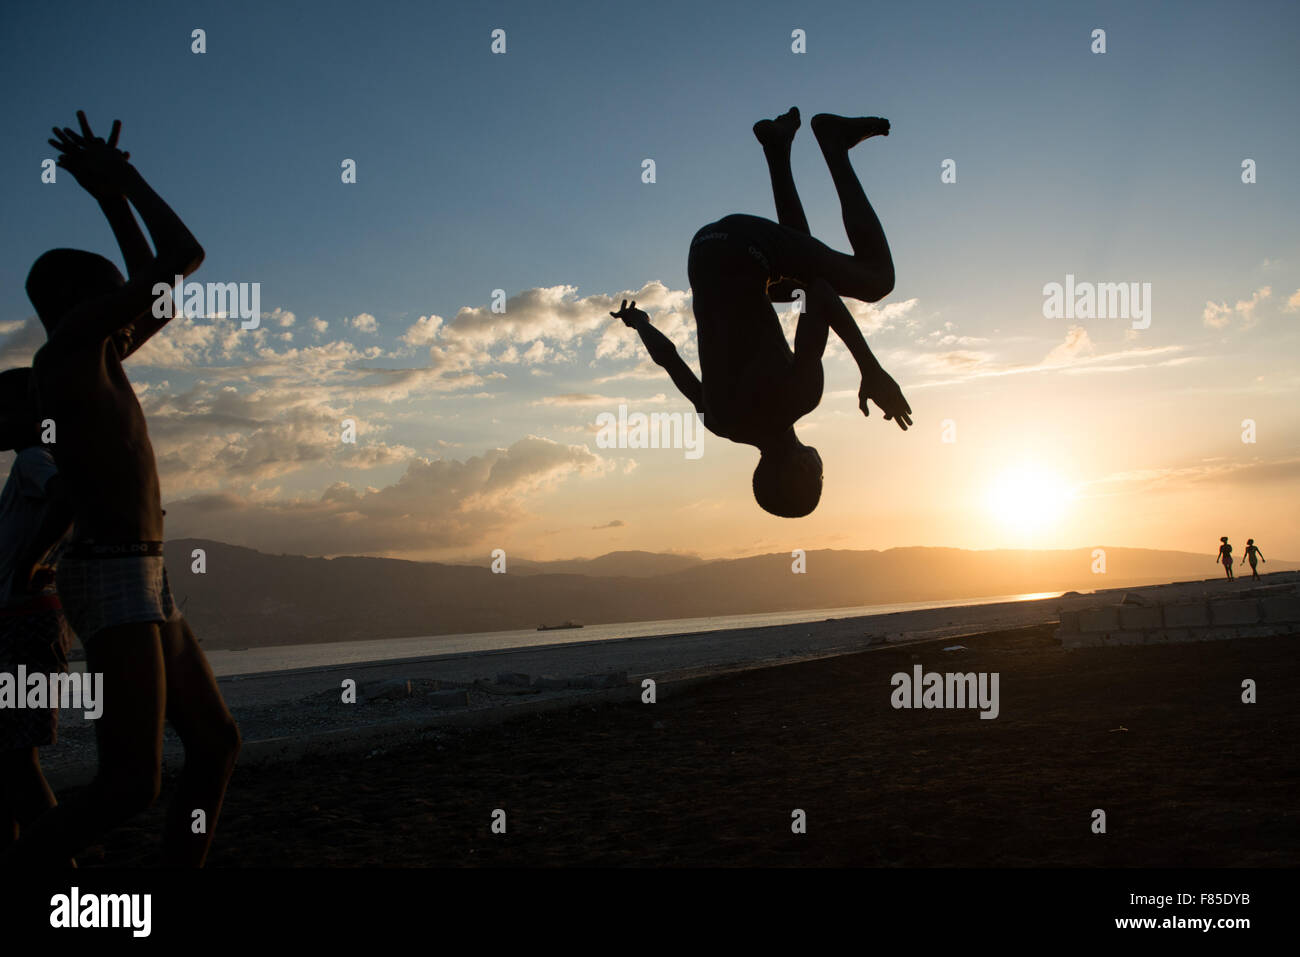 Beijing, Haiti. 4th Dec, 2015. Children practise parkour in the dock of Waf Jeremie, in the Cite Soleil neighborhood - Stock Image